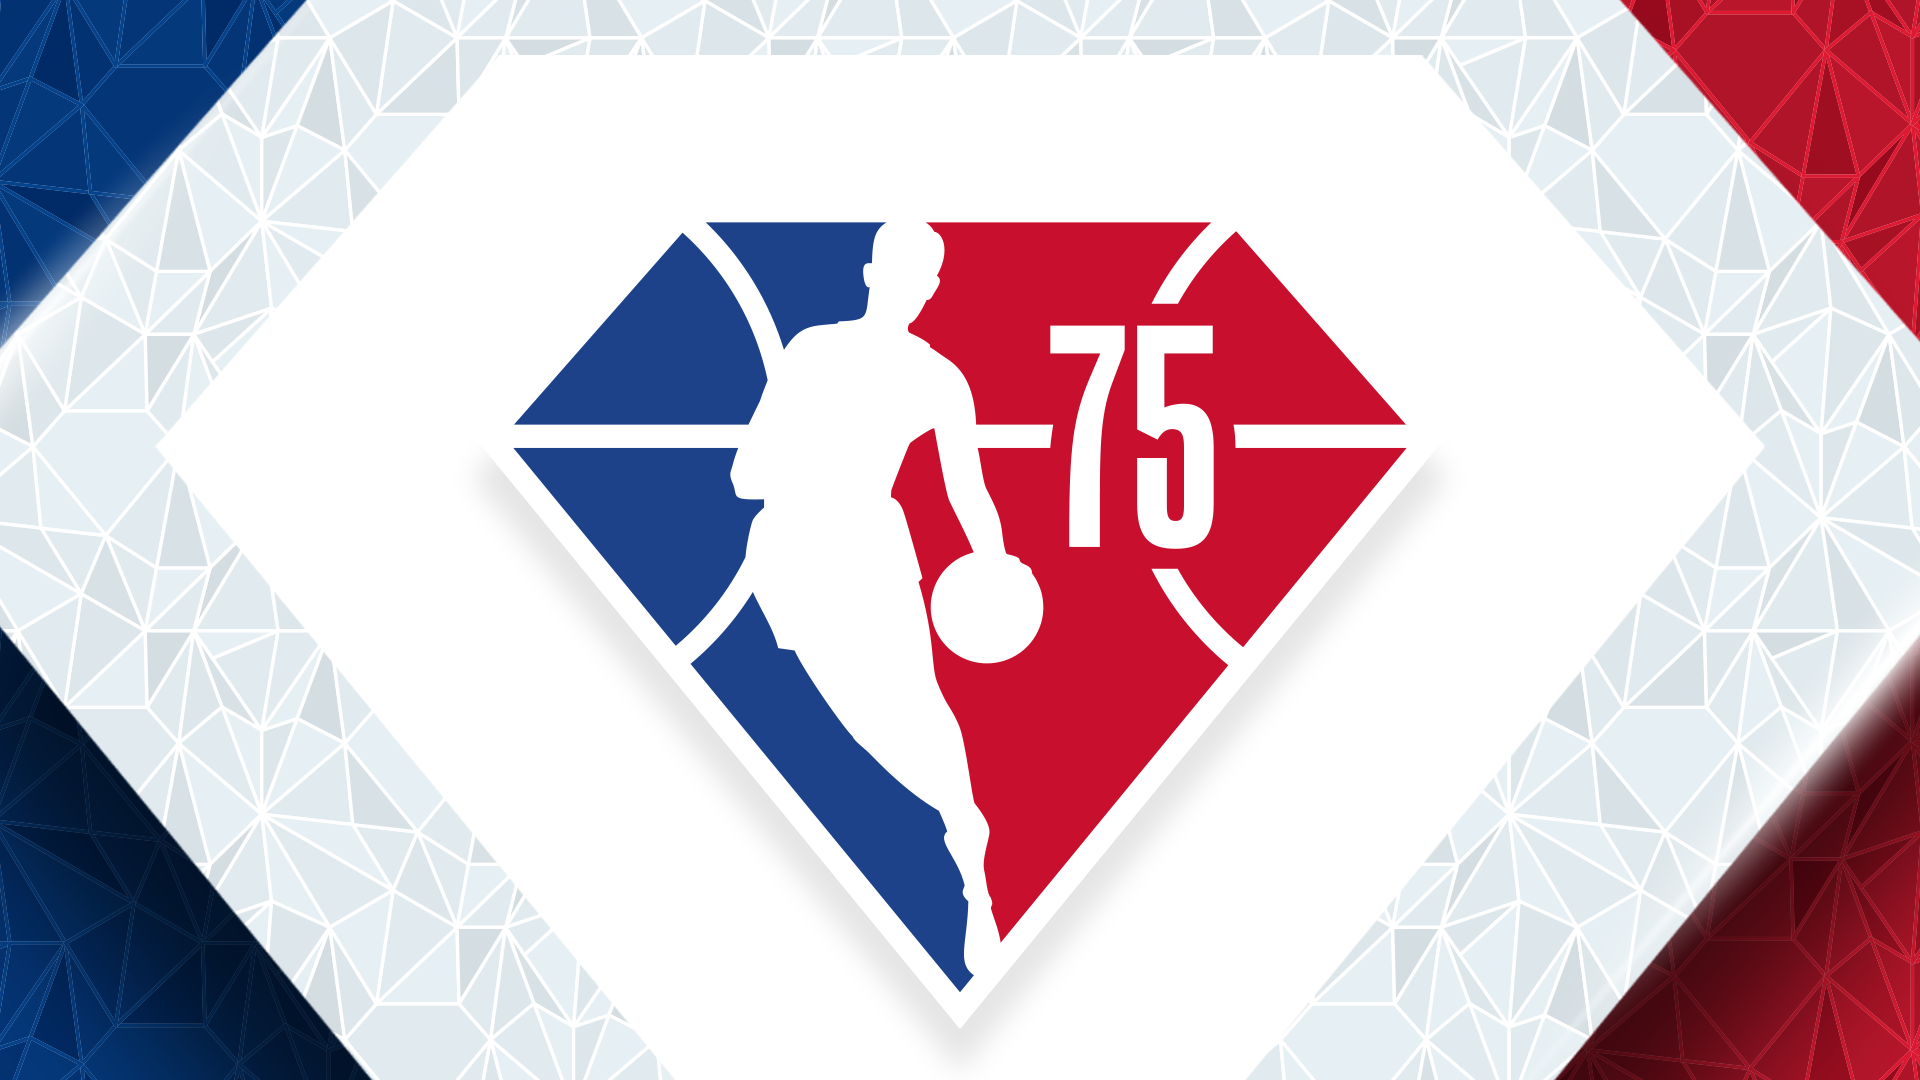 NBA to name 75 greatest players during 75th anniversary season celebration